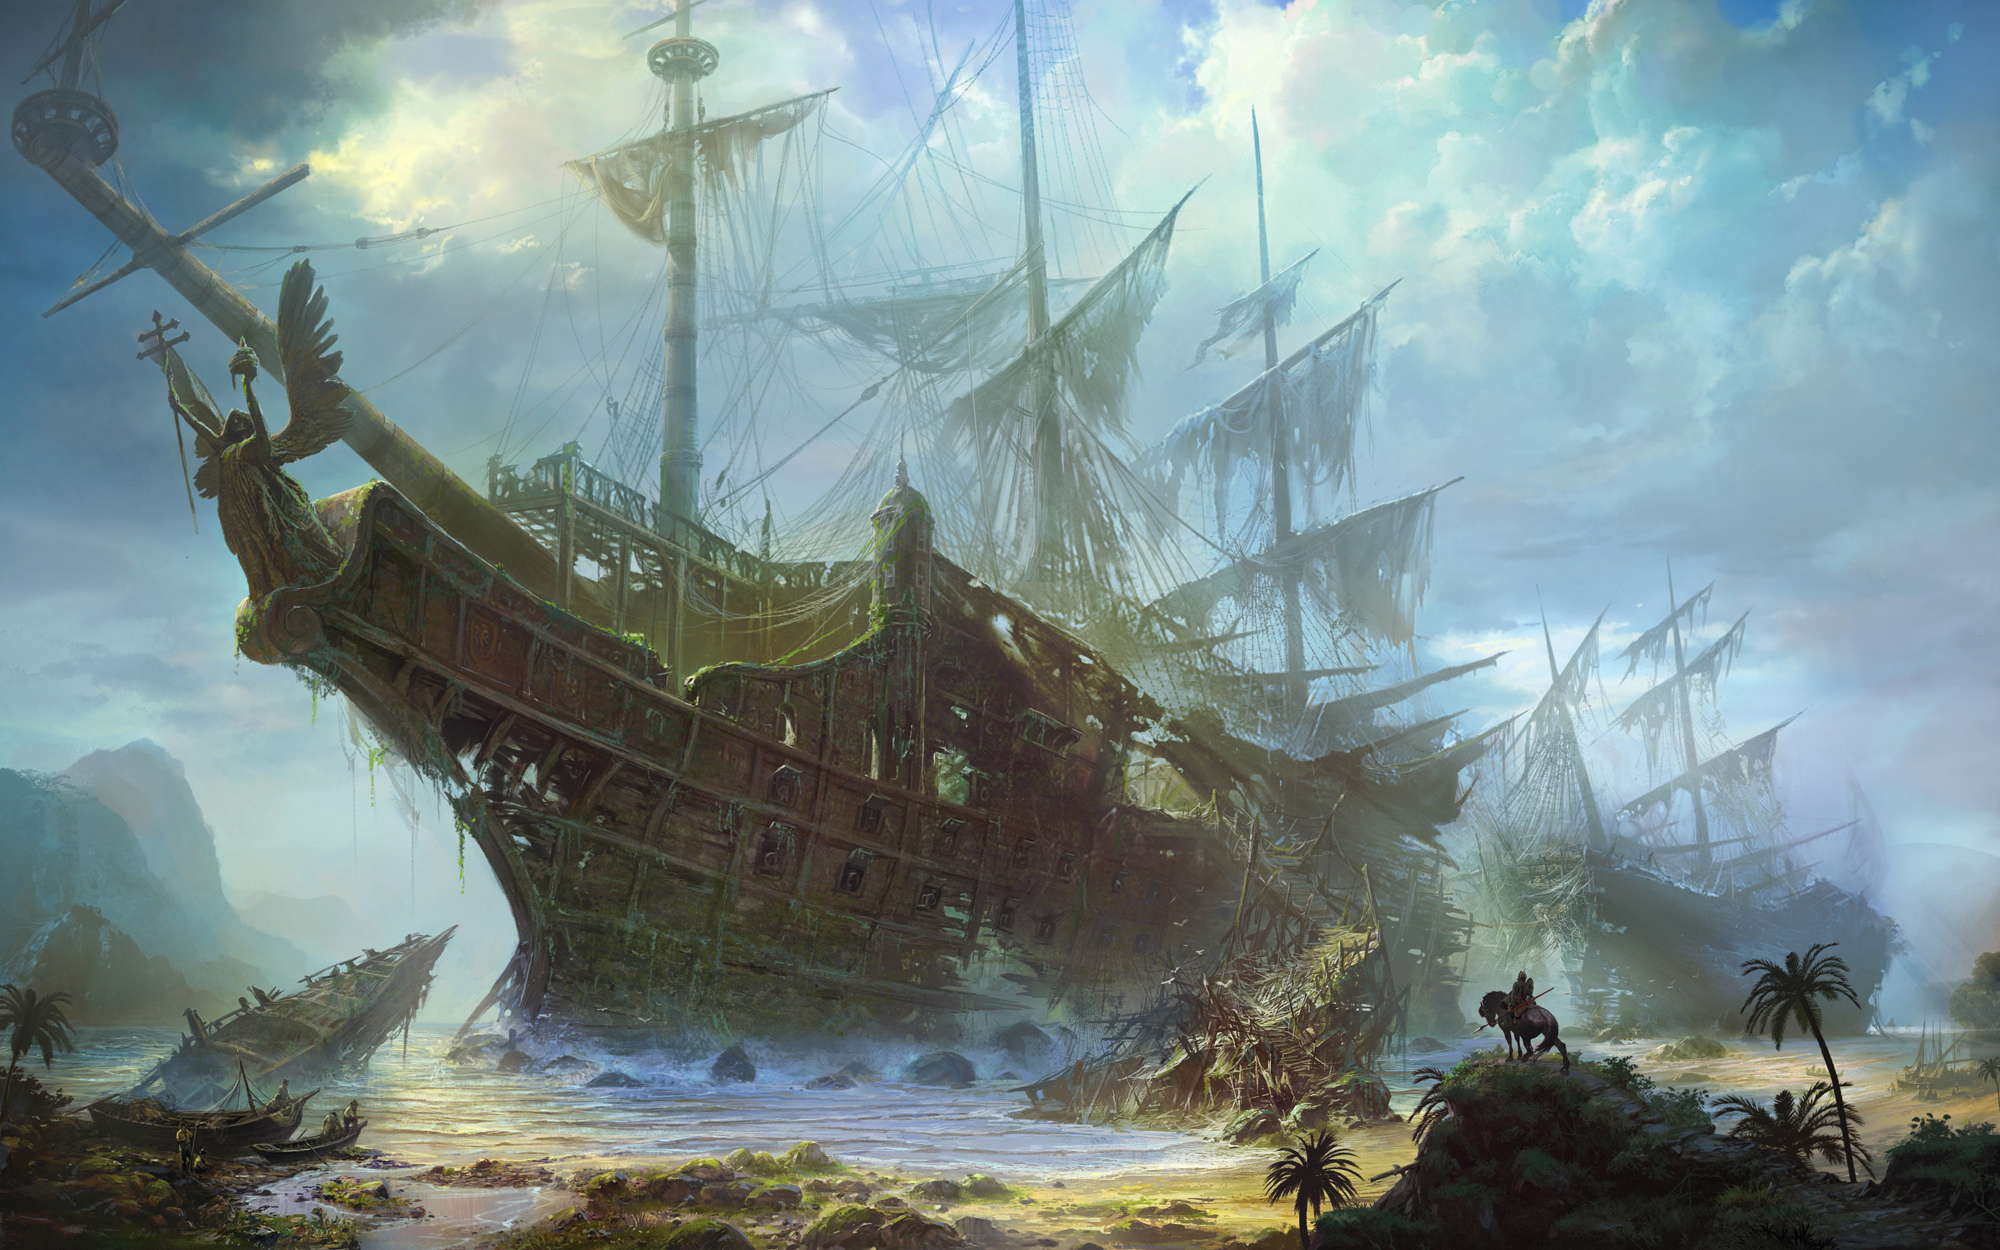 Drawn ship ghost Backgrounds 255 Wallpaper Background Ship